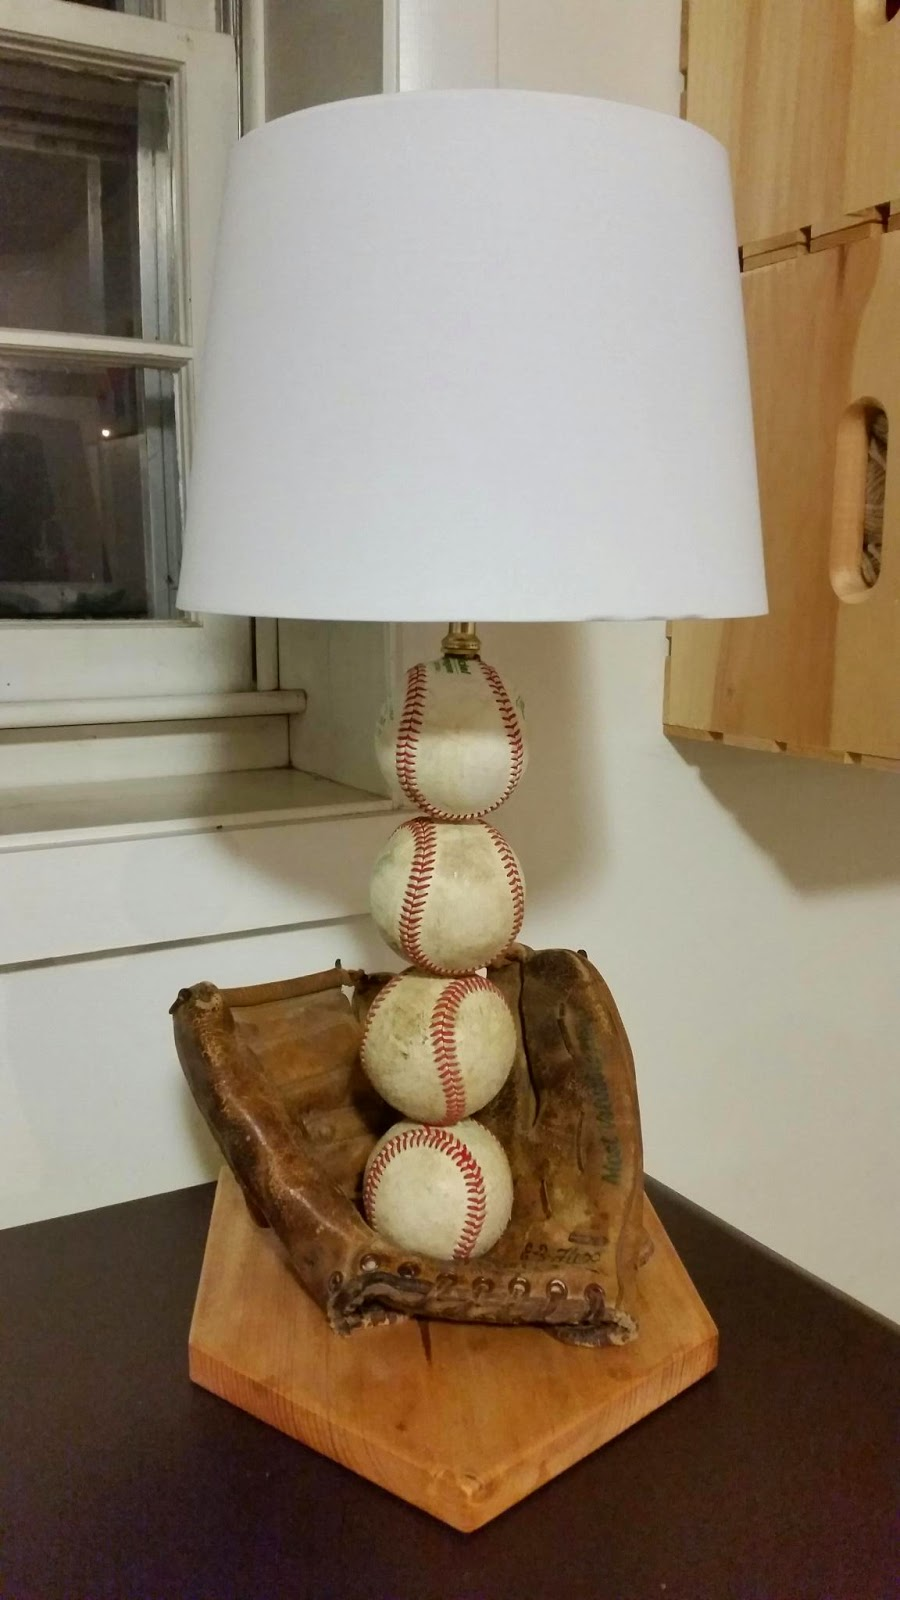 22 doable diy projects for men that still look cool - How to make your room look cool for guys ...